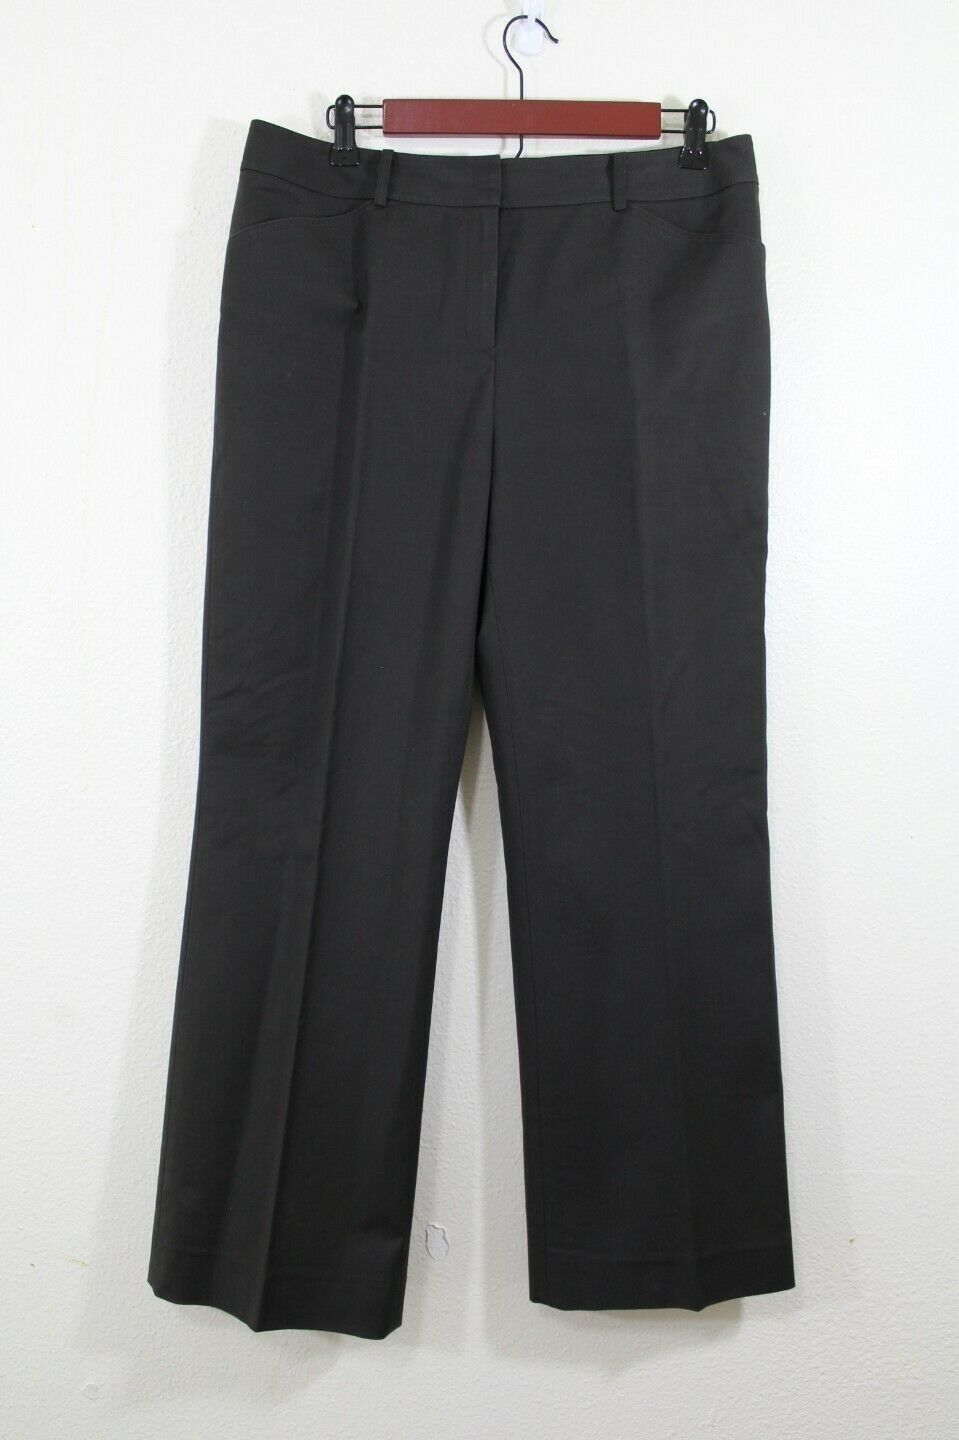 Lafayette 148 new york size 8 woman pants dark brown fitted stretch trousers